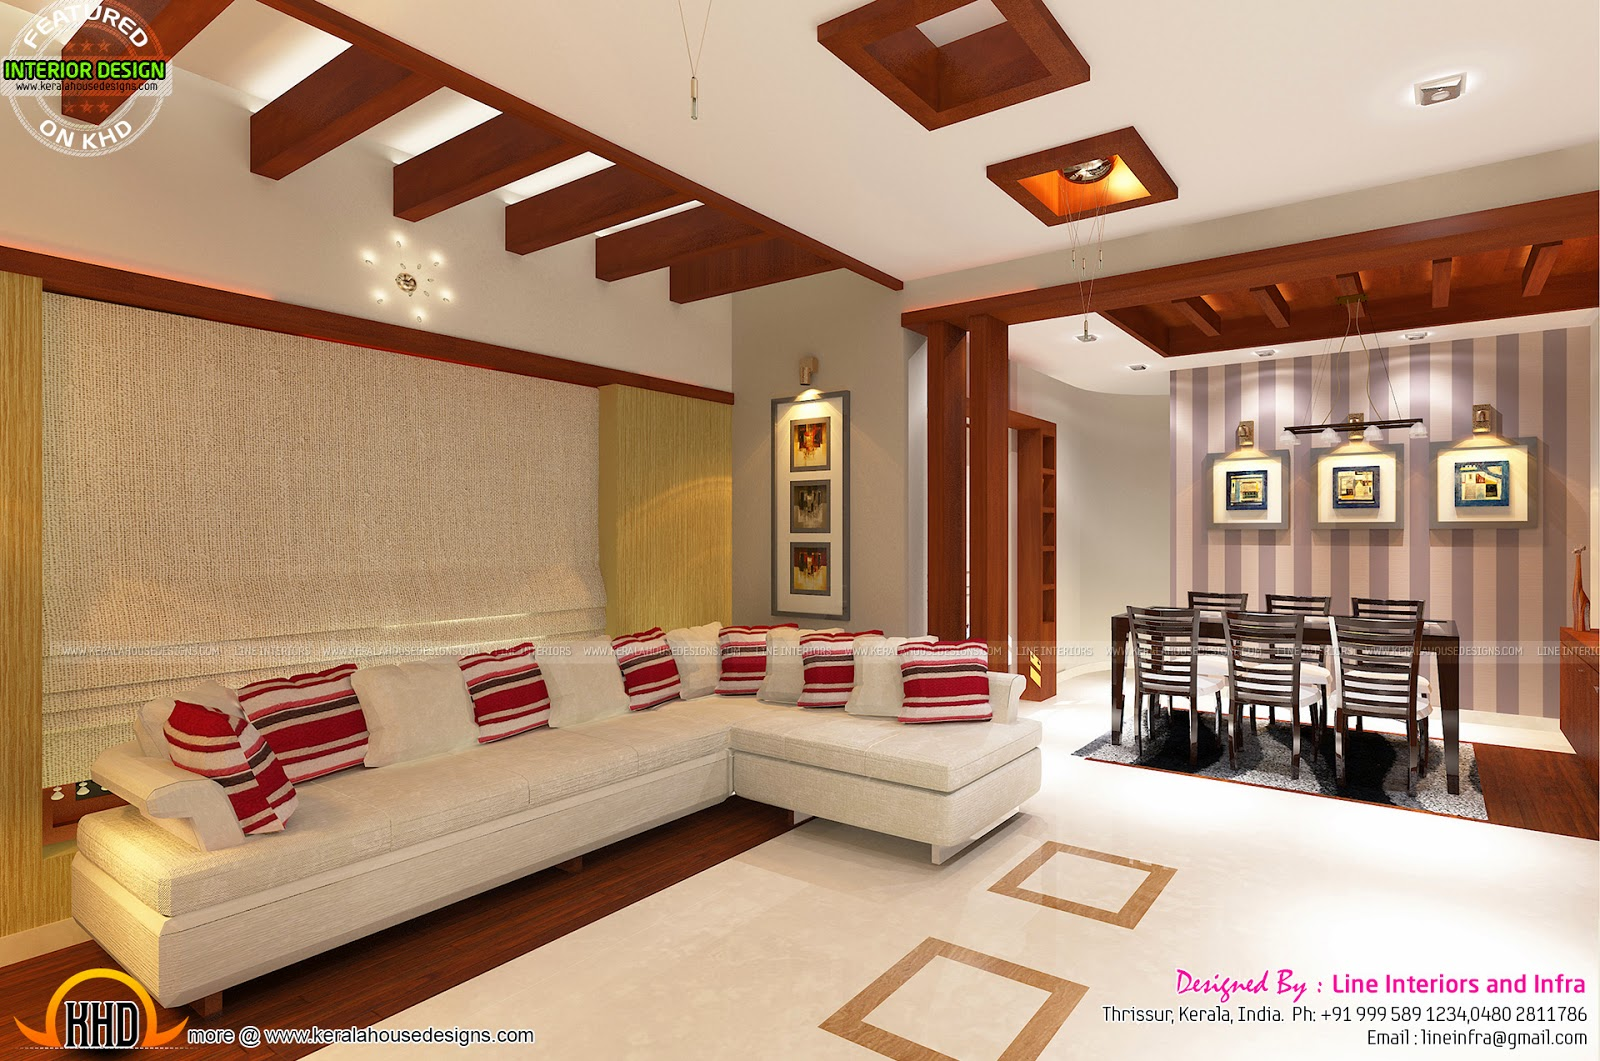 Interiors design by line interiors and infra kerala home for Living room design ideas kerala